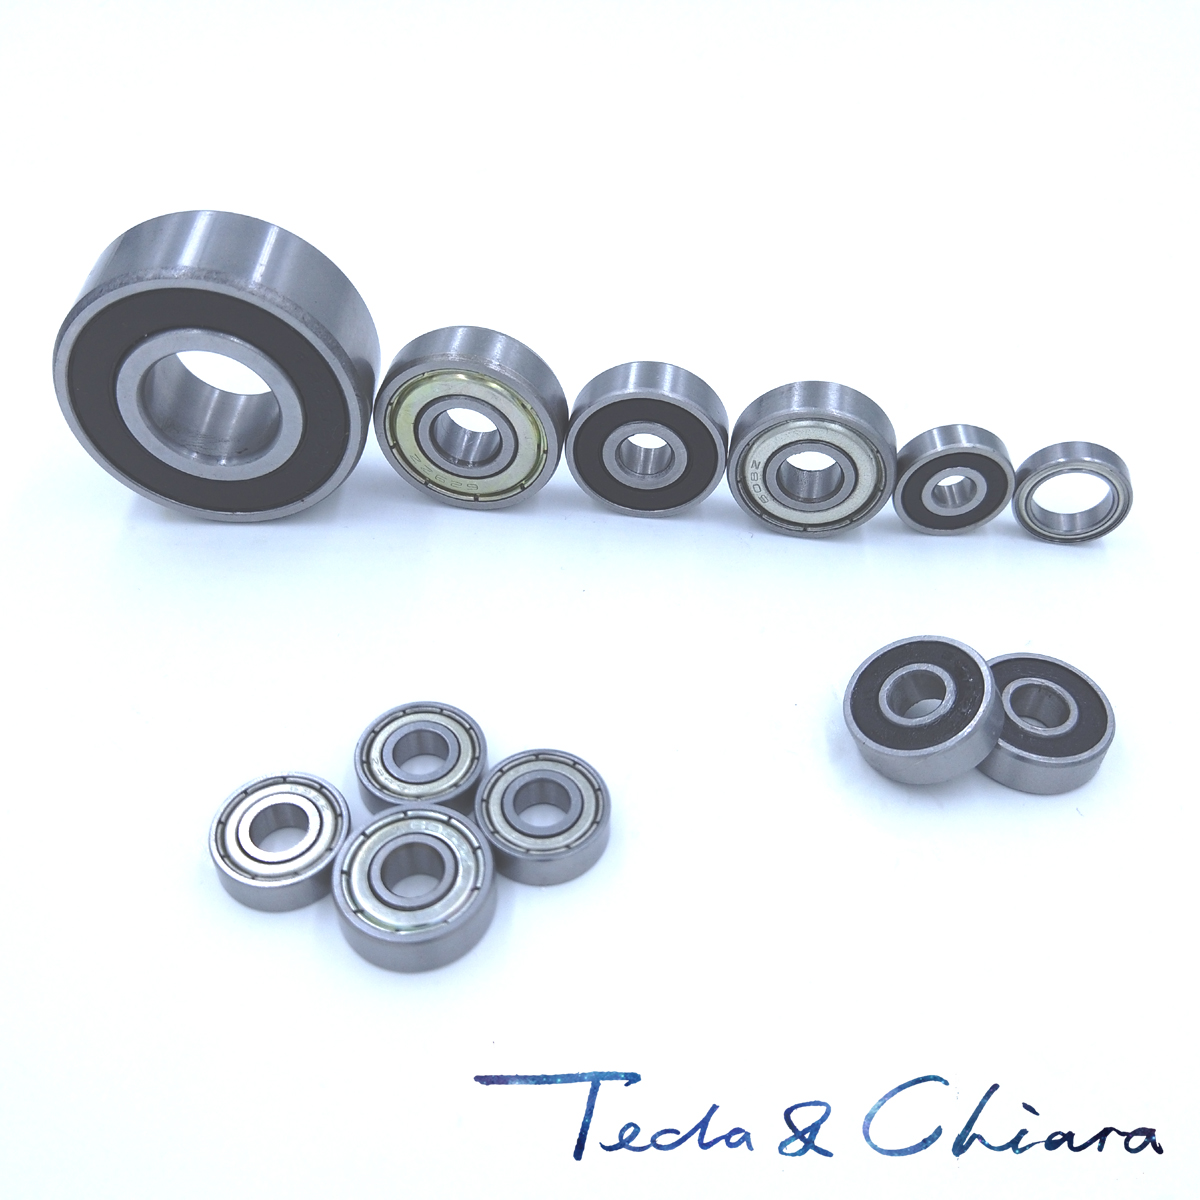 6303 6303ZZ 6303RS 6303-2Z 6303Z 6303-2RS ZZ RS RZ 2RZ Deep Groove Ball Bearings 17 X 47 X 14mm